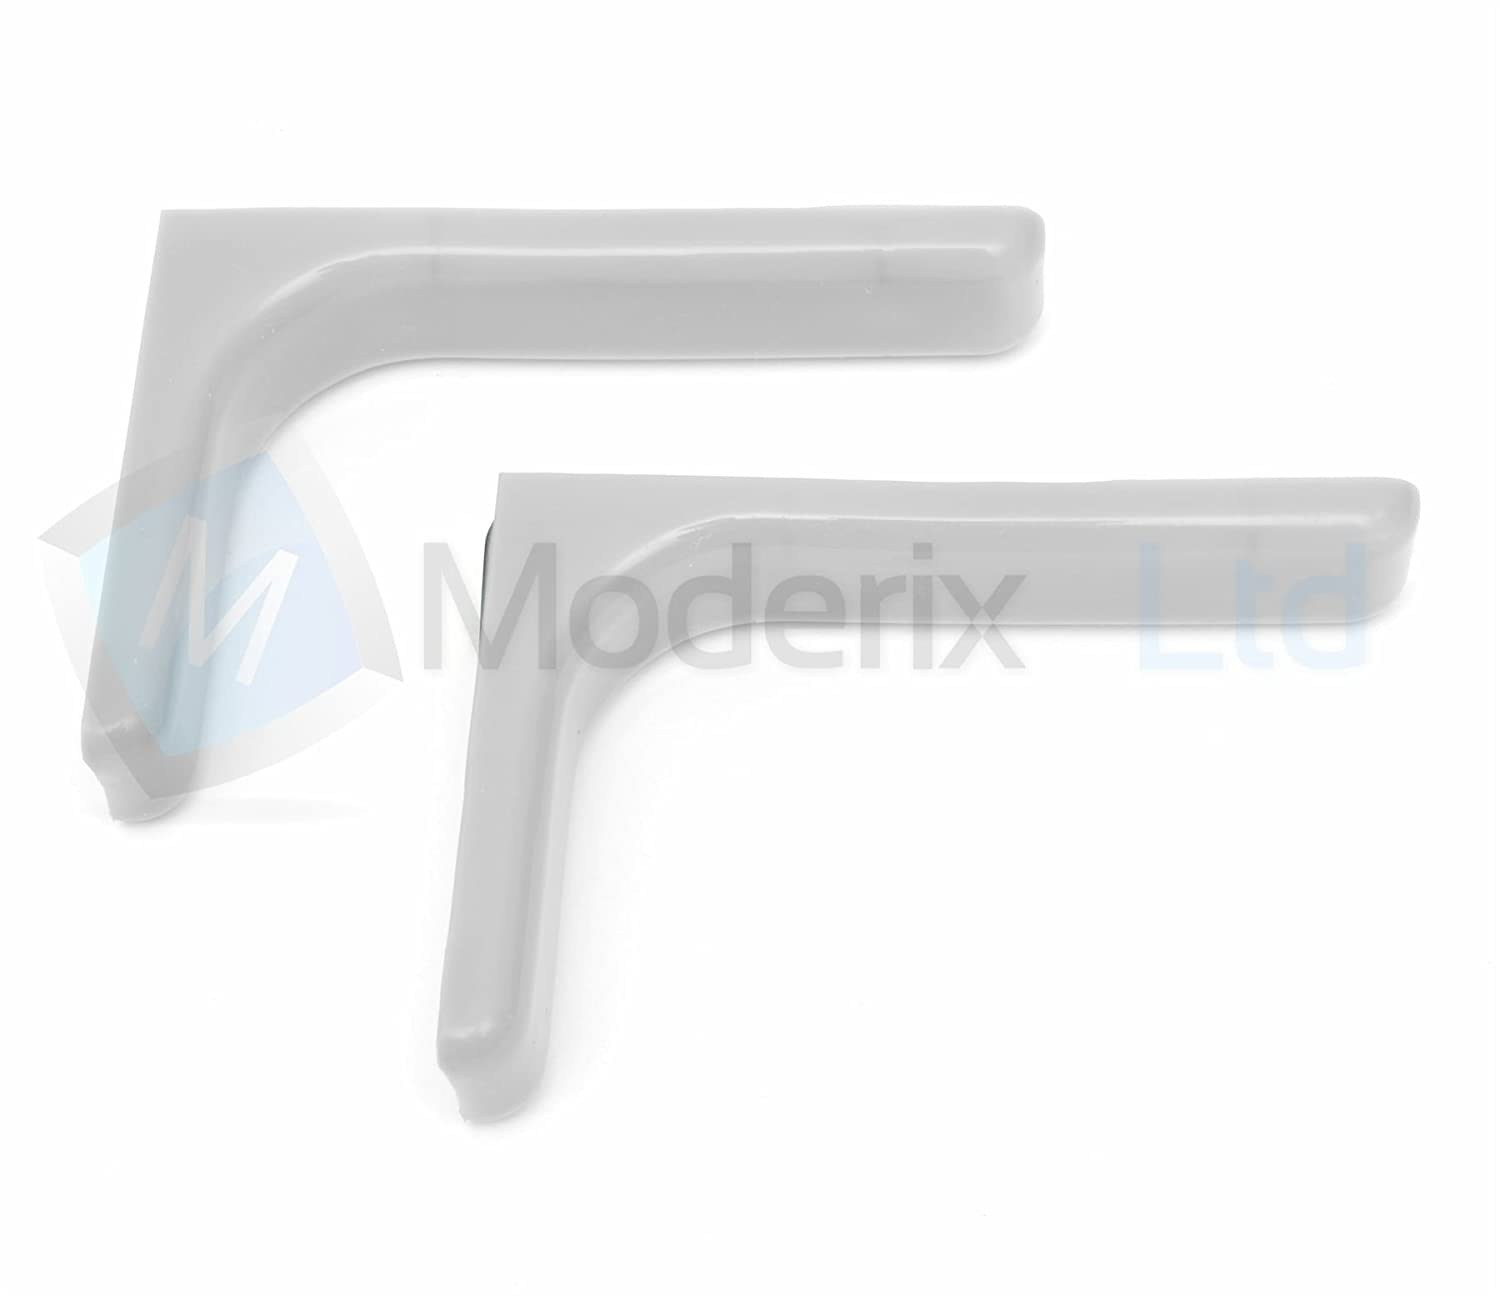 4 pairs Shelf support brackets with covers 120mm Invisible//Concealed Fixings White